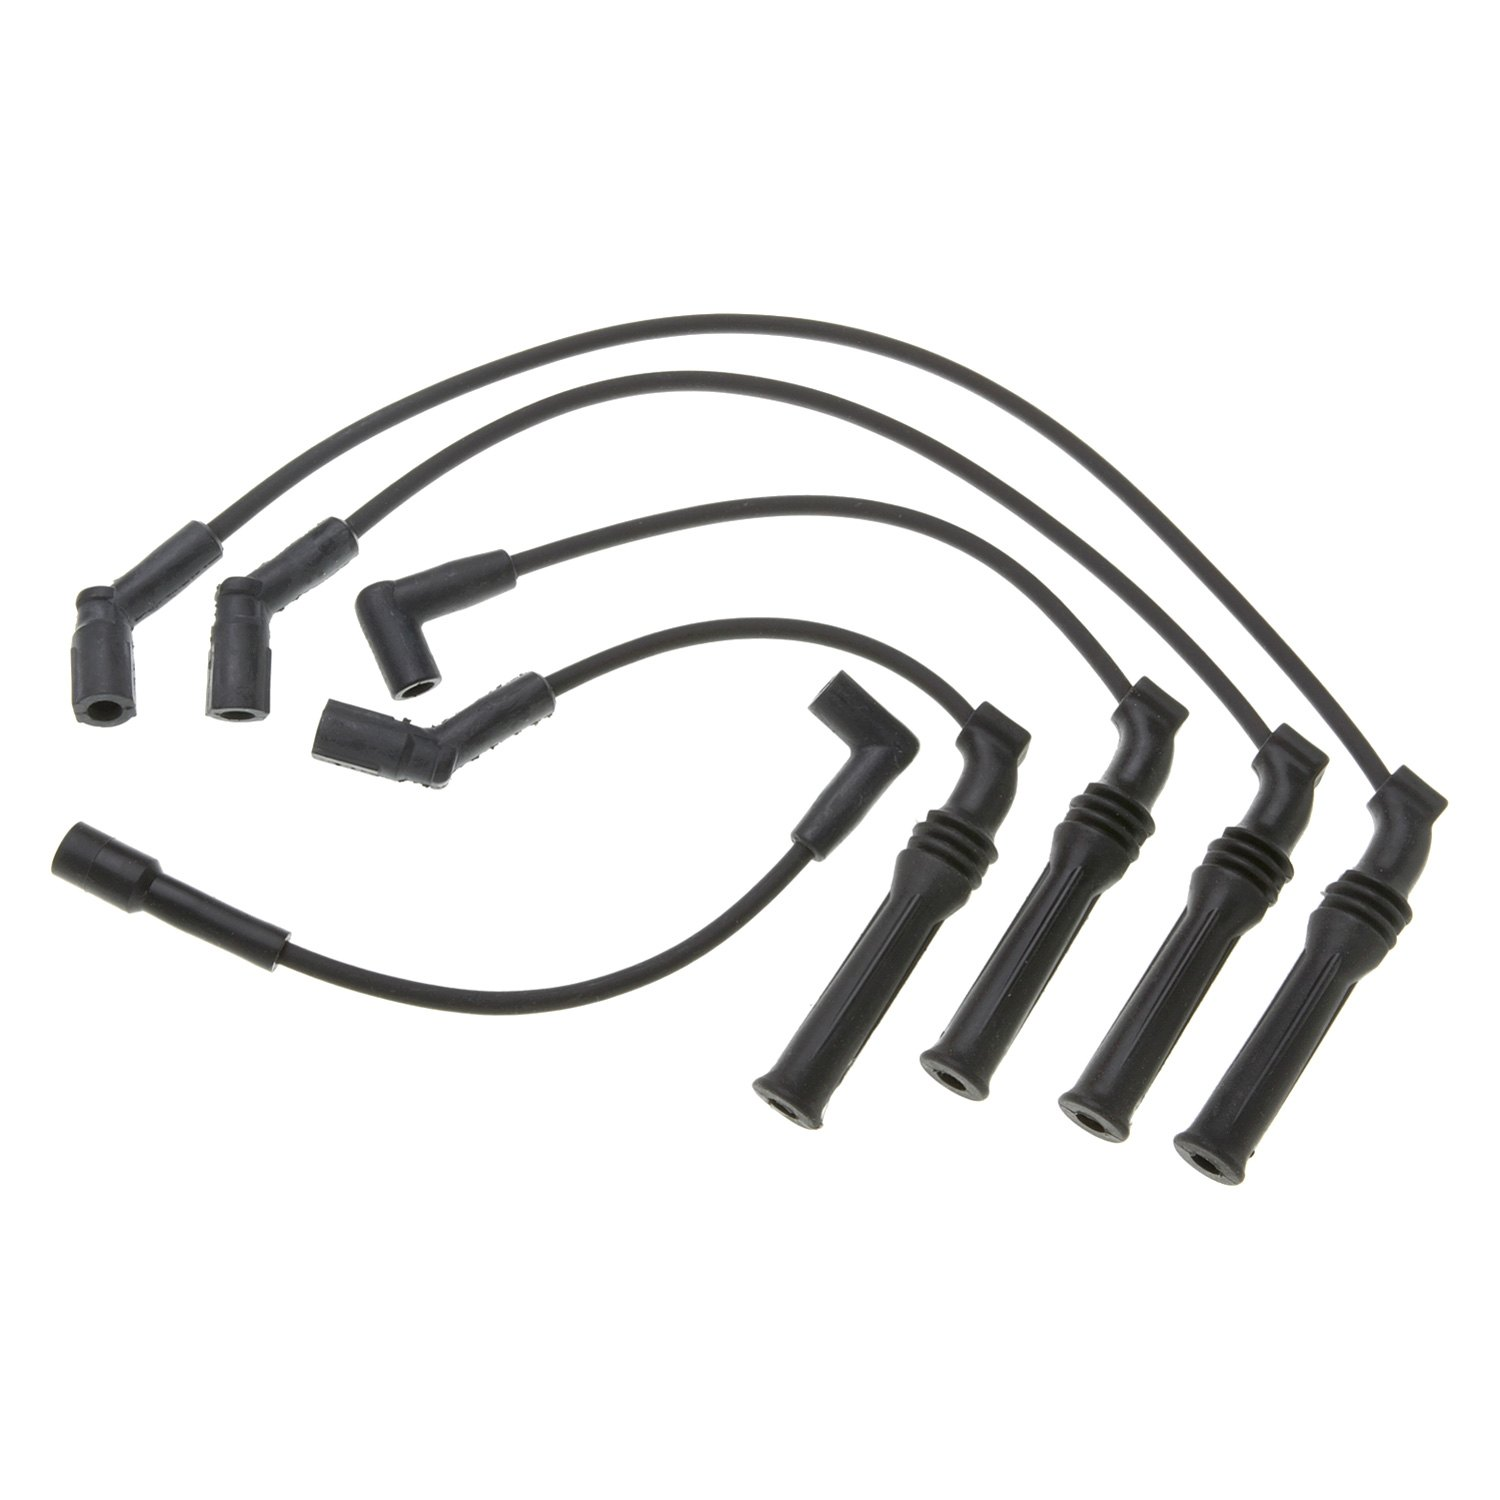 hight resolution of acdelco professional spark plug wire set acdelco peugeot 405